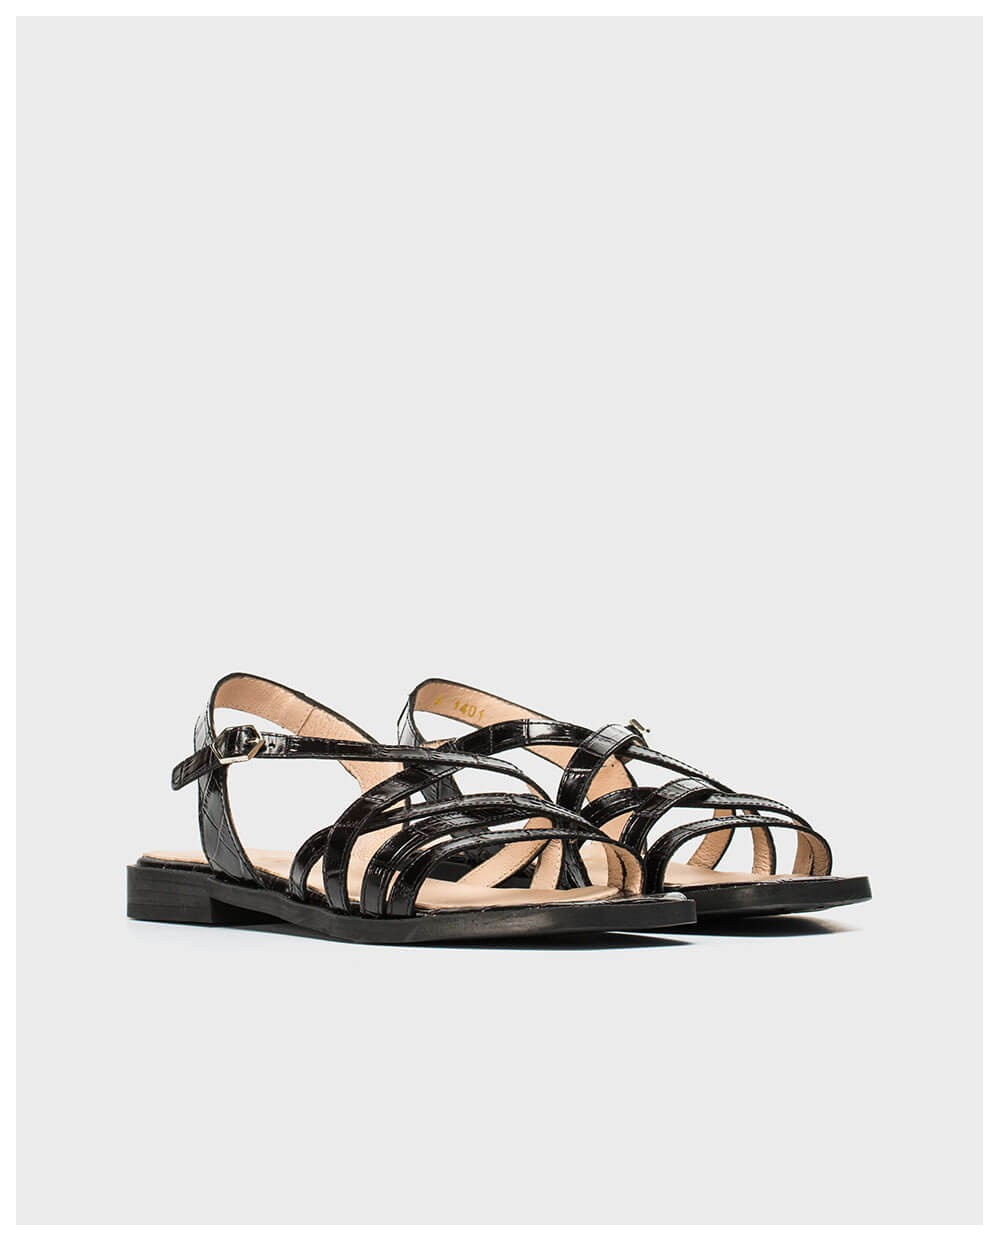 Wonders-Sandals-Flat sandals with straps